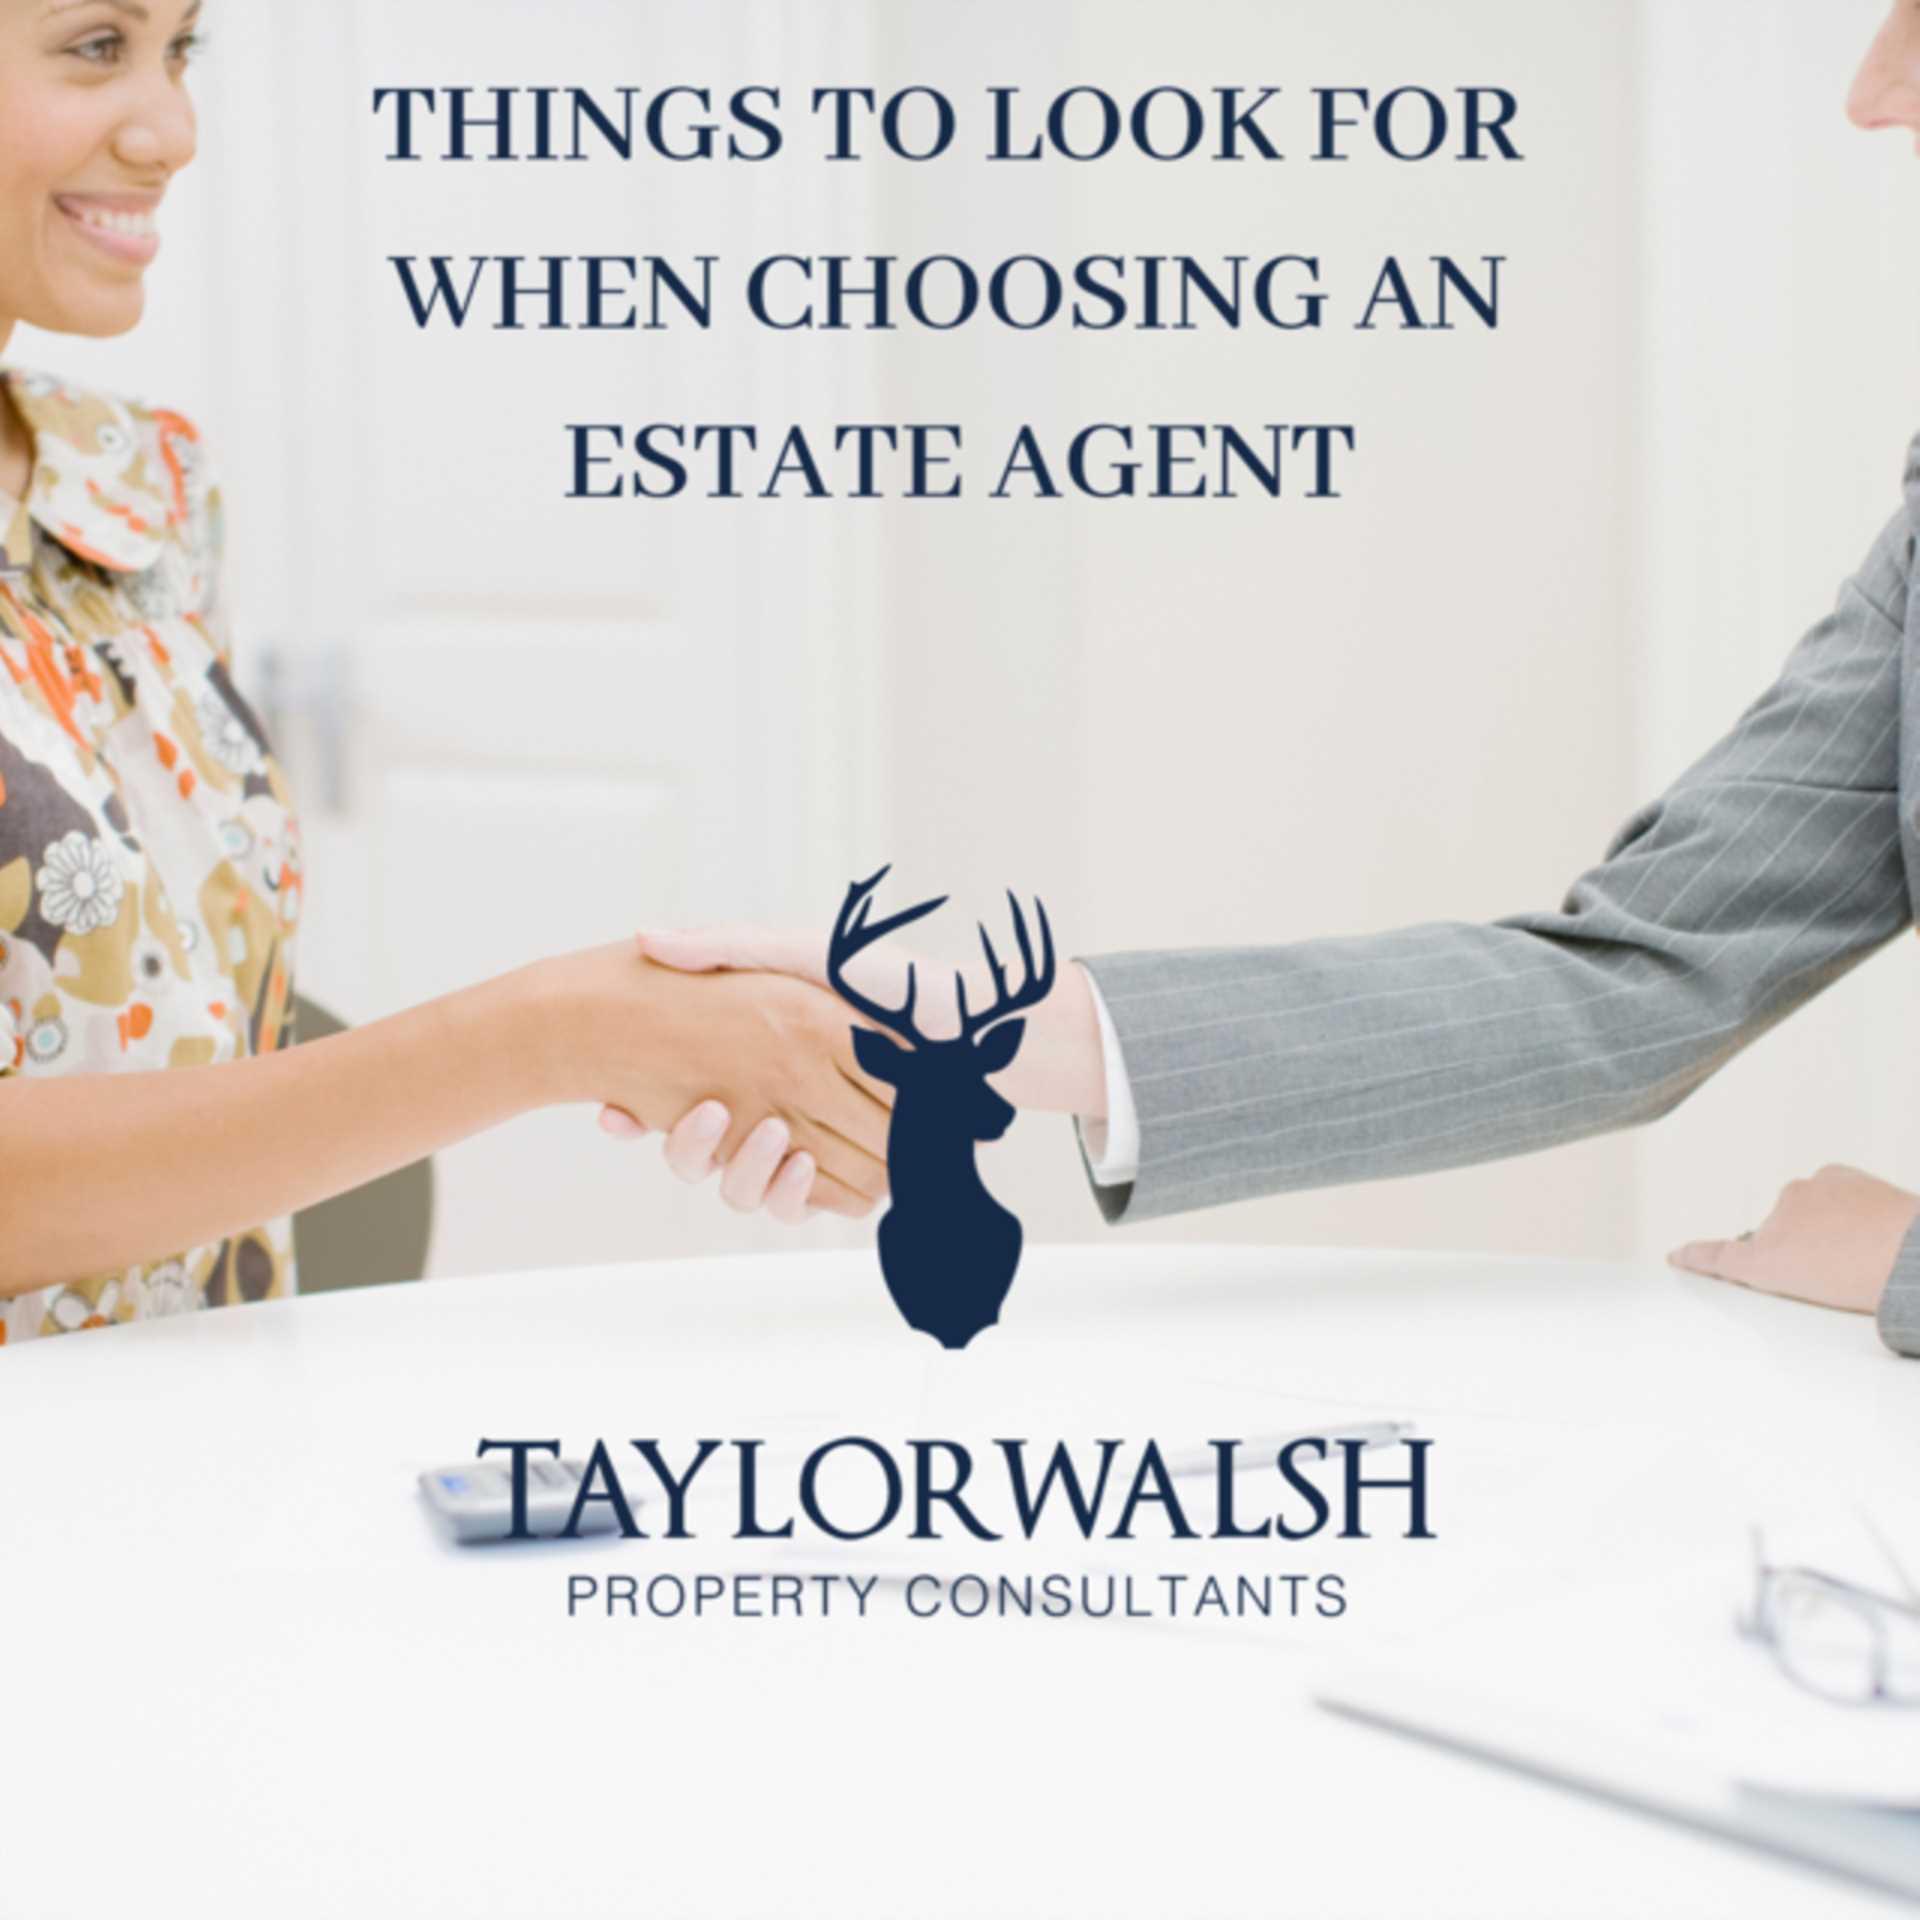 THINGS TO LOOK FOR WHEN CHOOSING AN ESTATE AGENT!